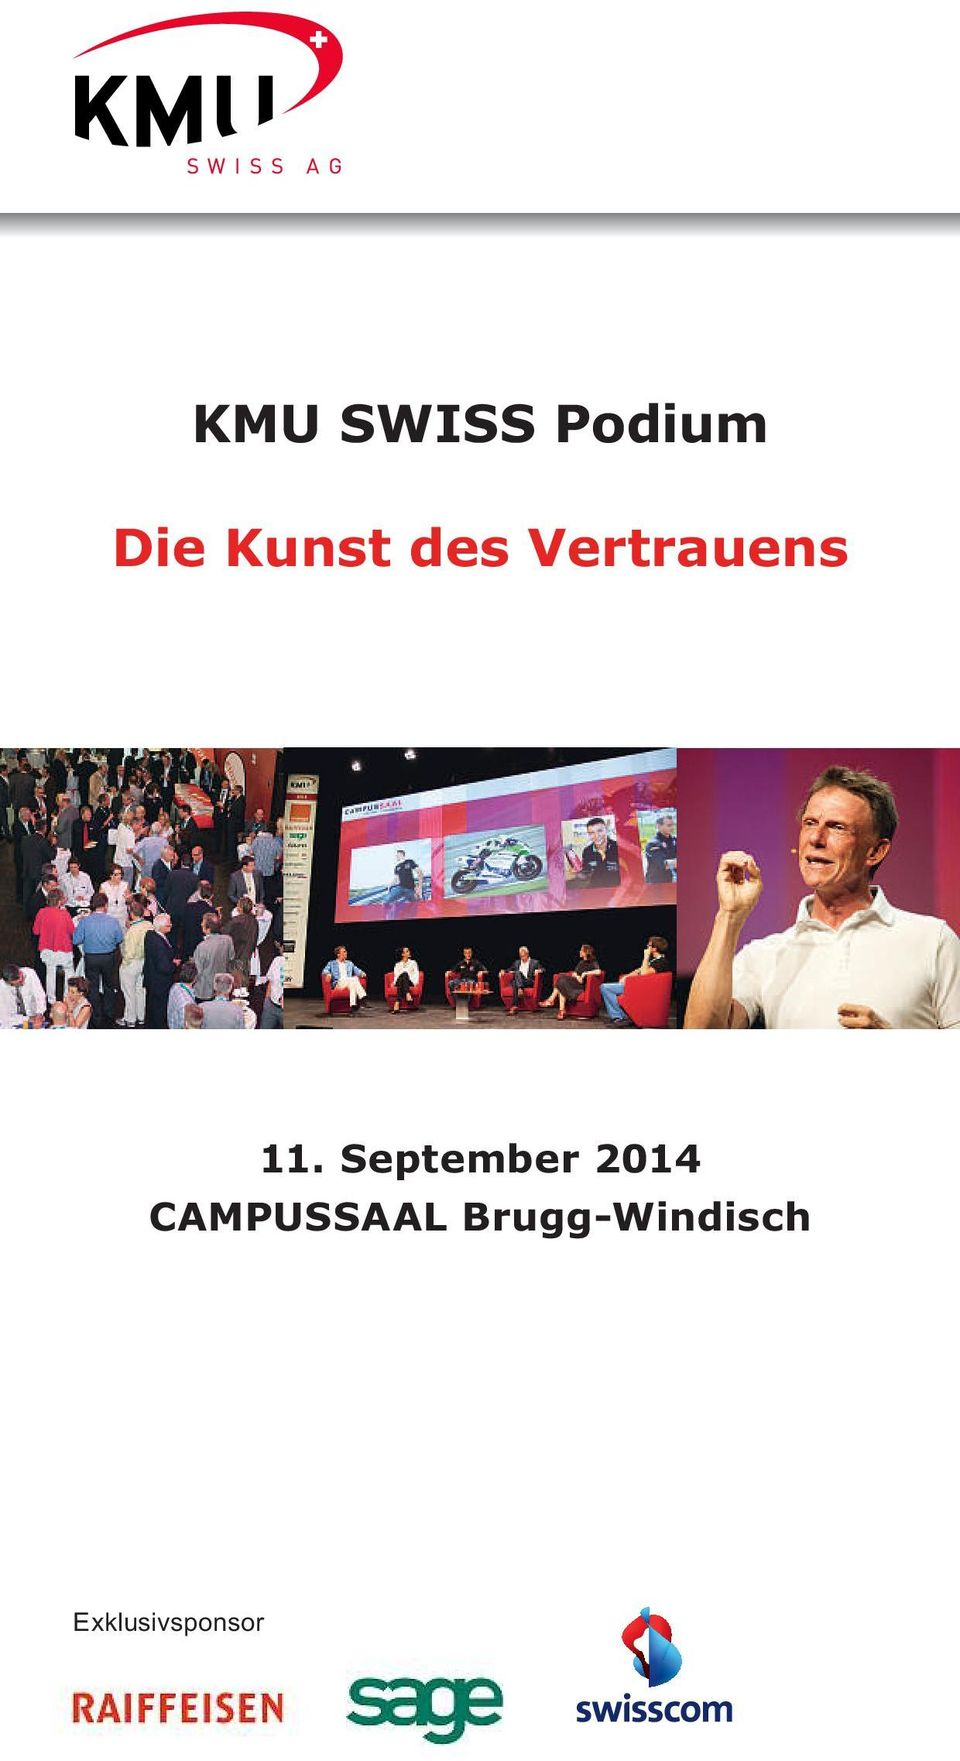 September 2014 CAMPUSSAAL